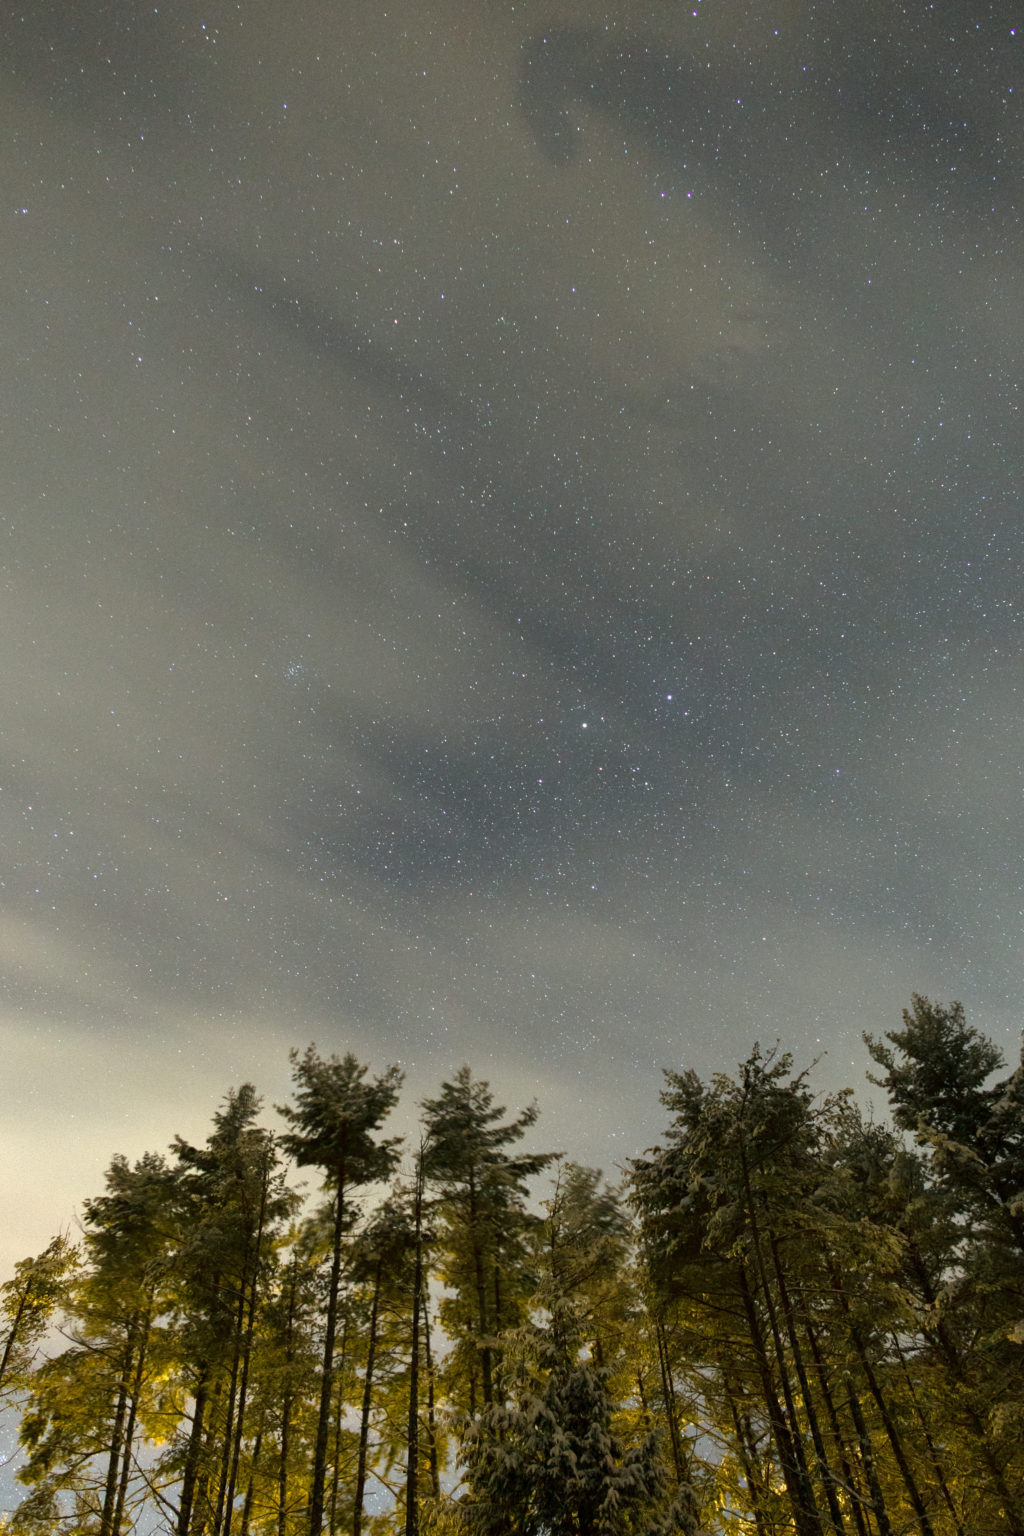 Tall Pines and Faint Stars